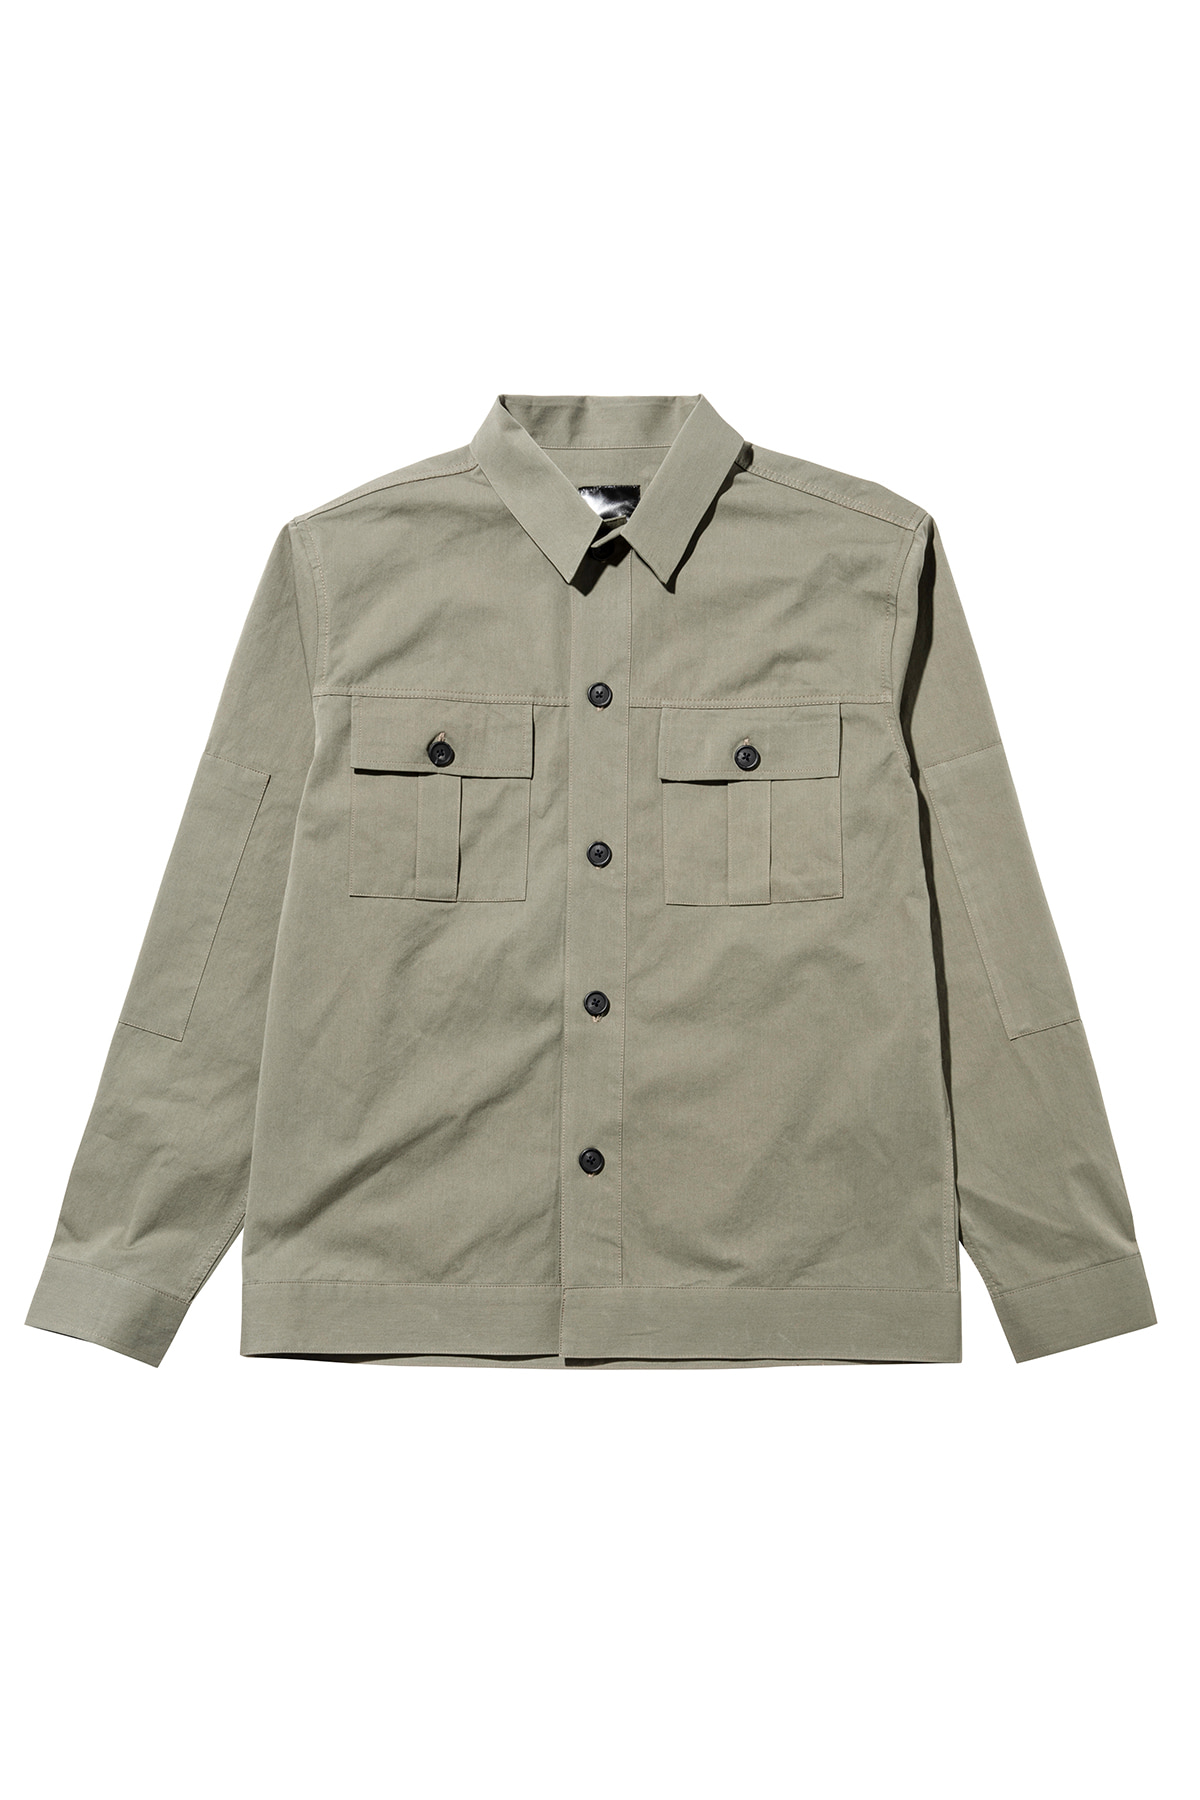 Fatigue pocket shirt jacket (kakhi) #jp37